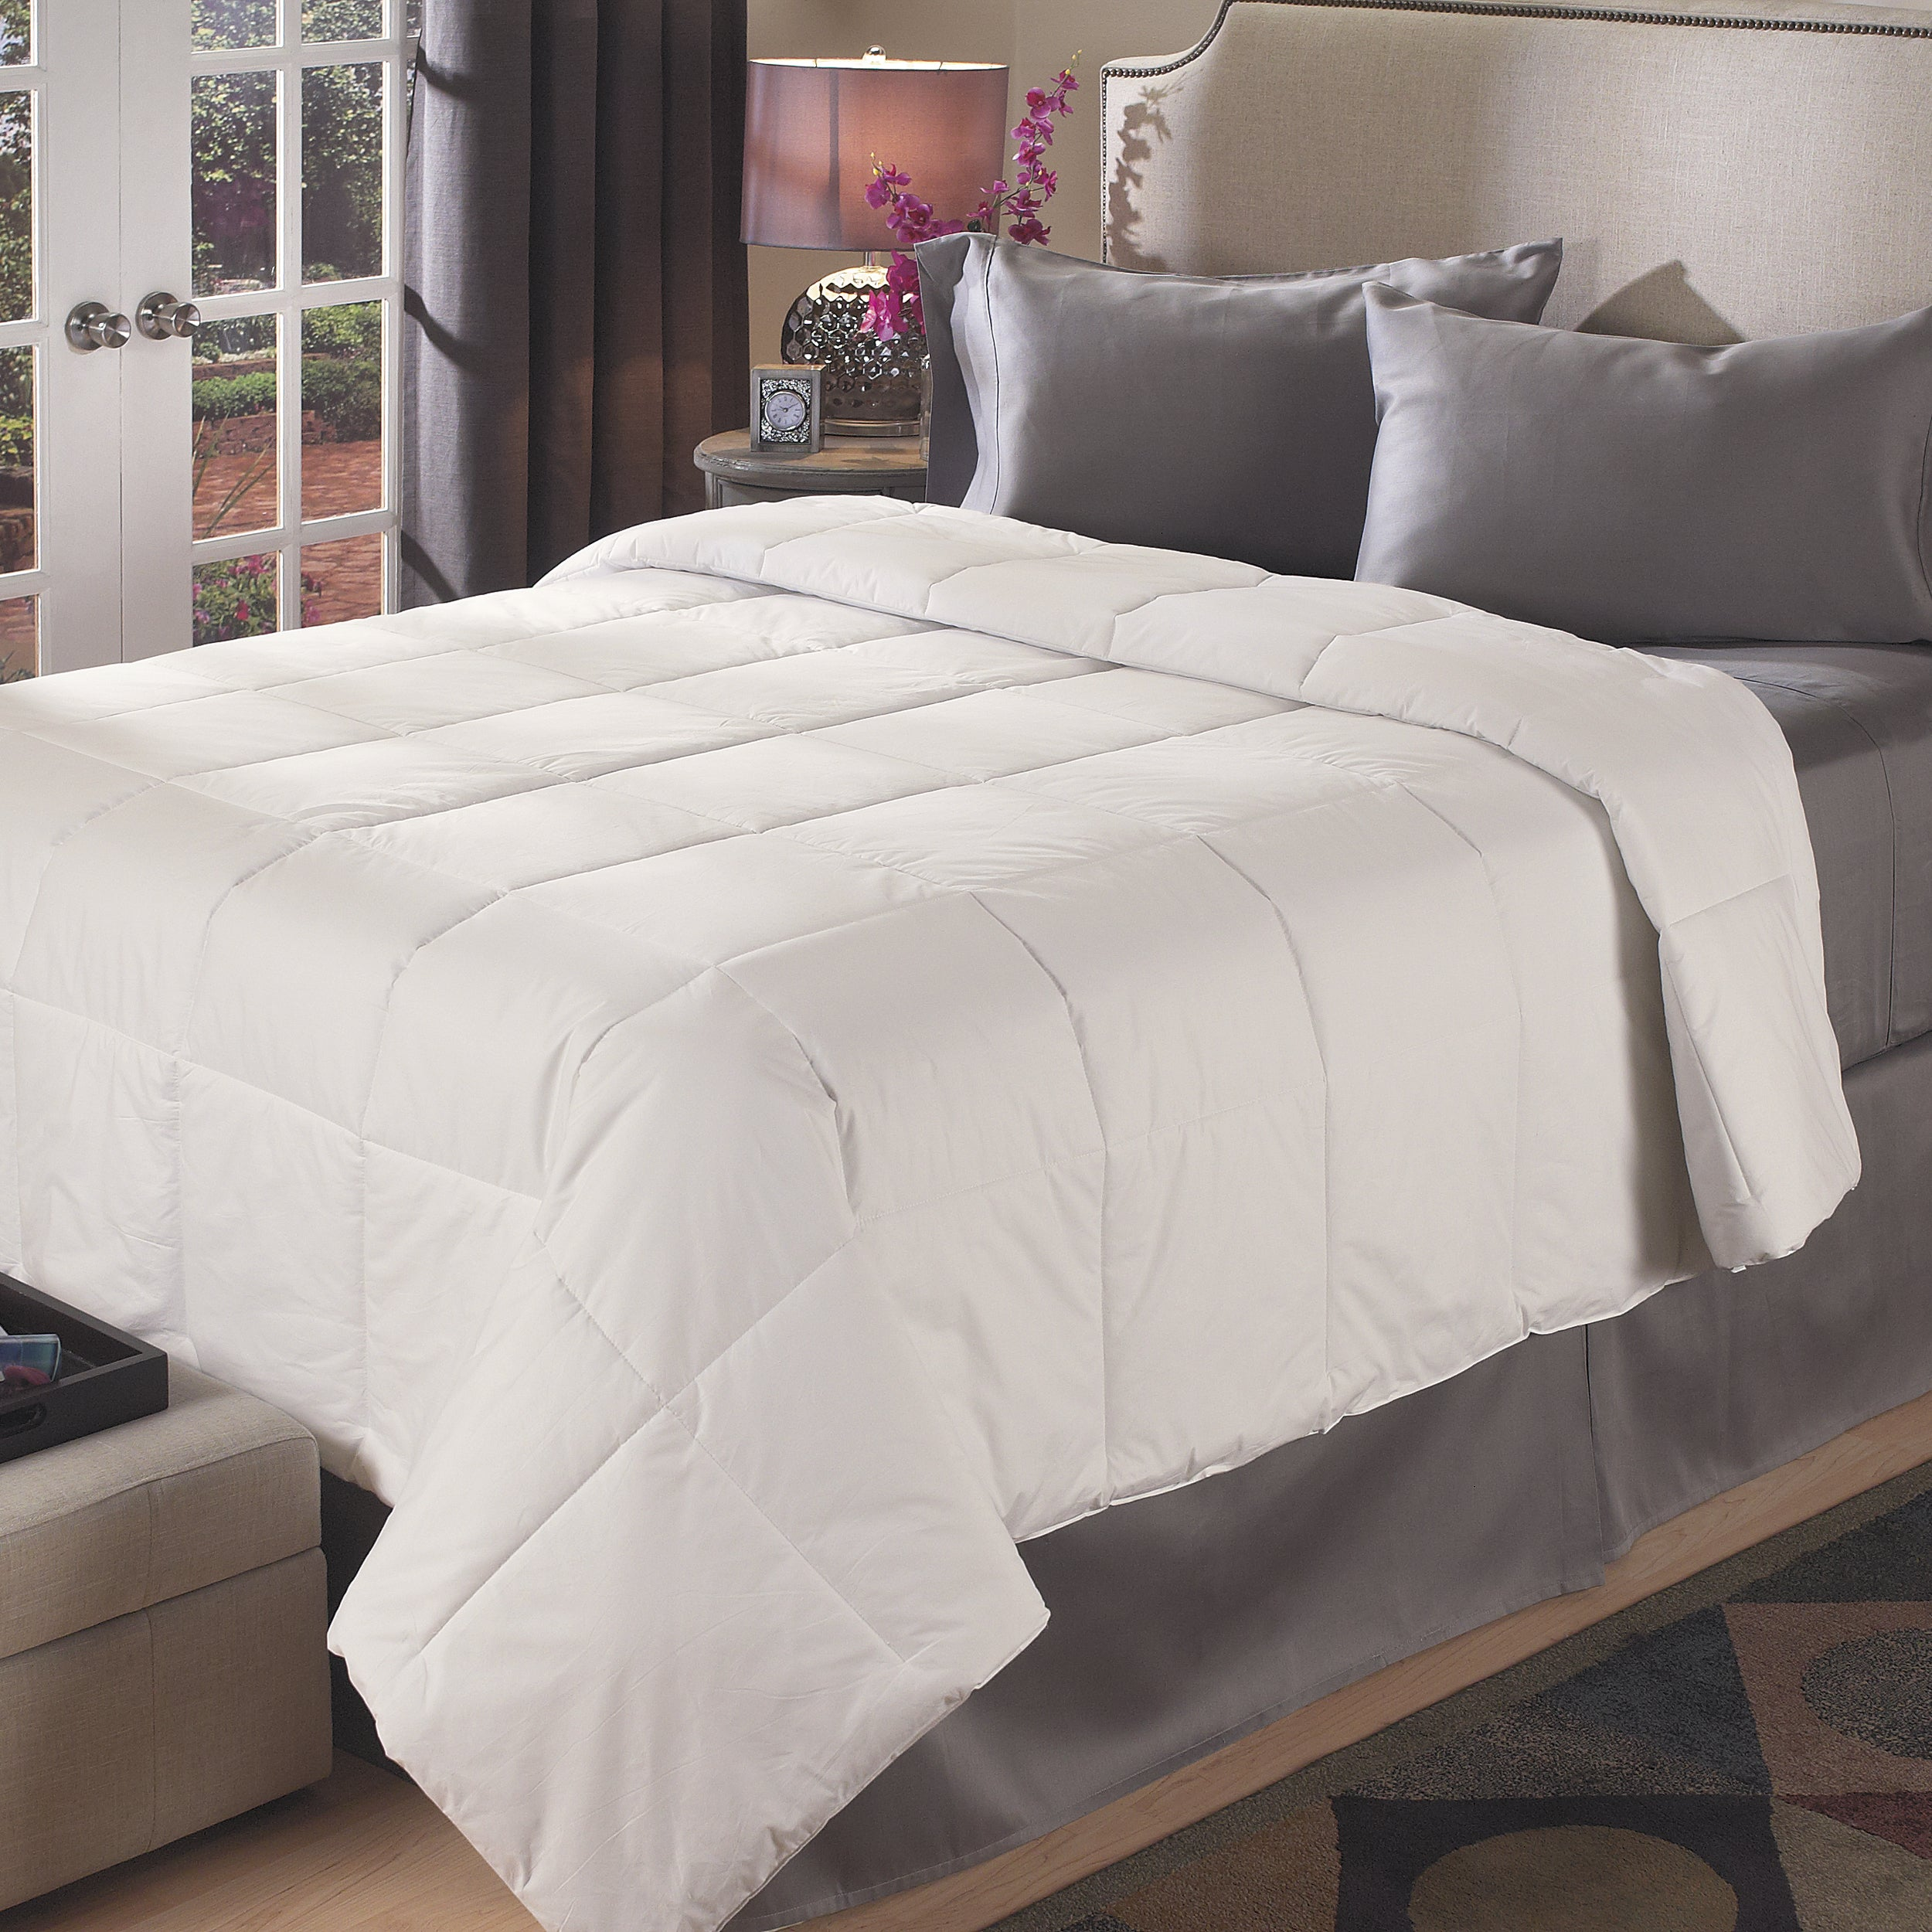 Luxury Sized Medium-weight All Season Down Alternative Comforter